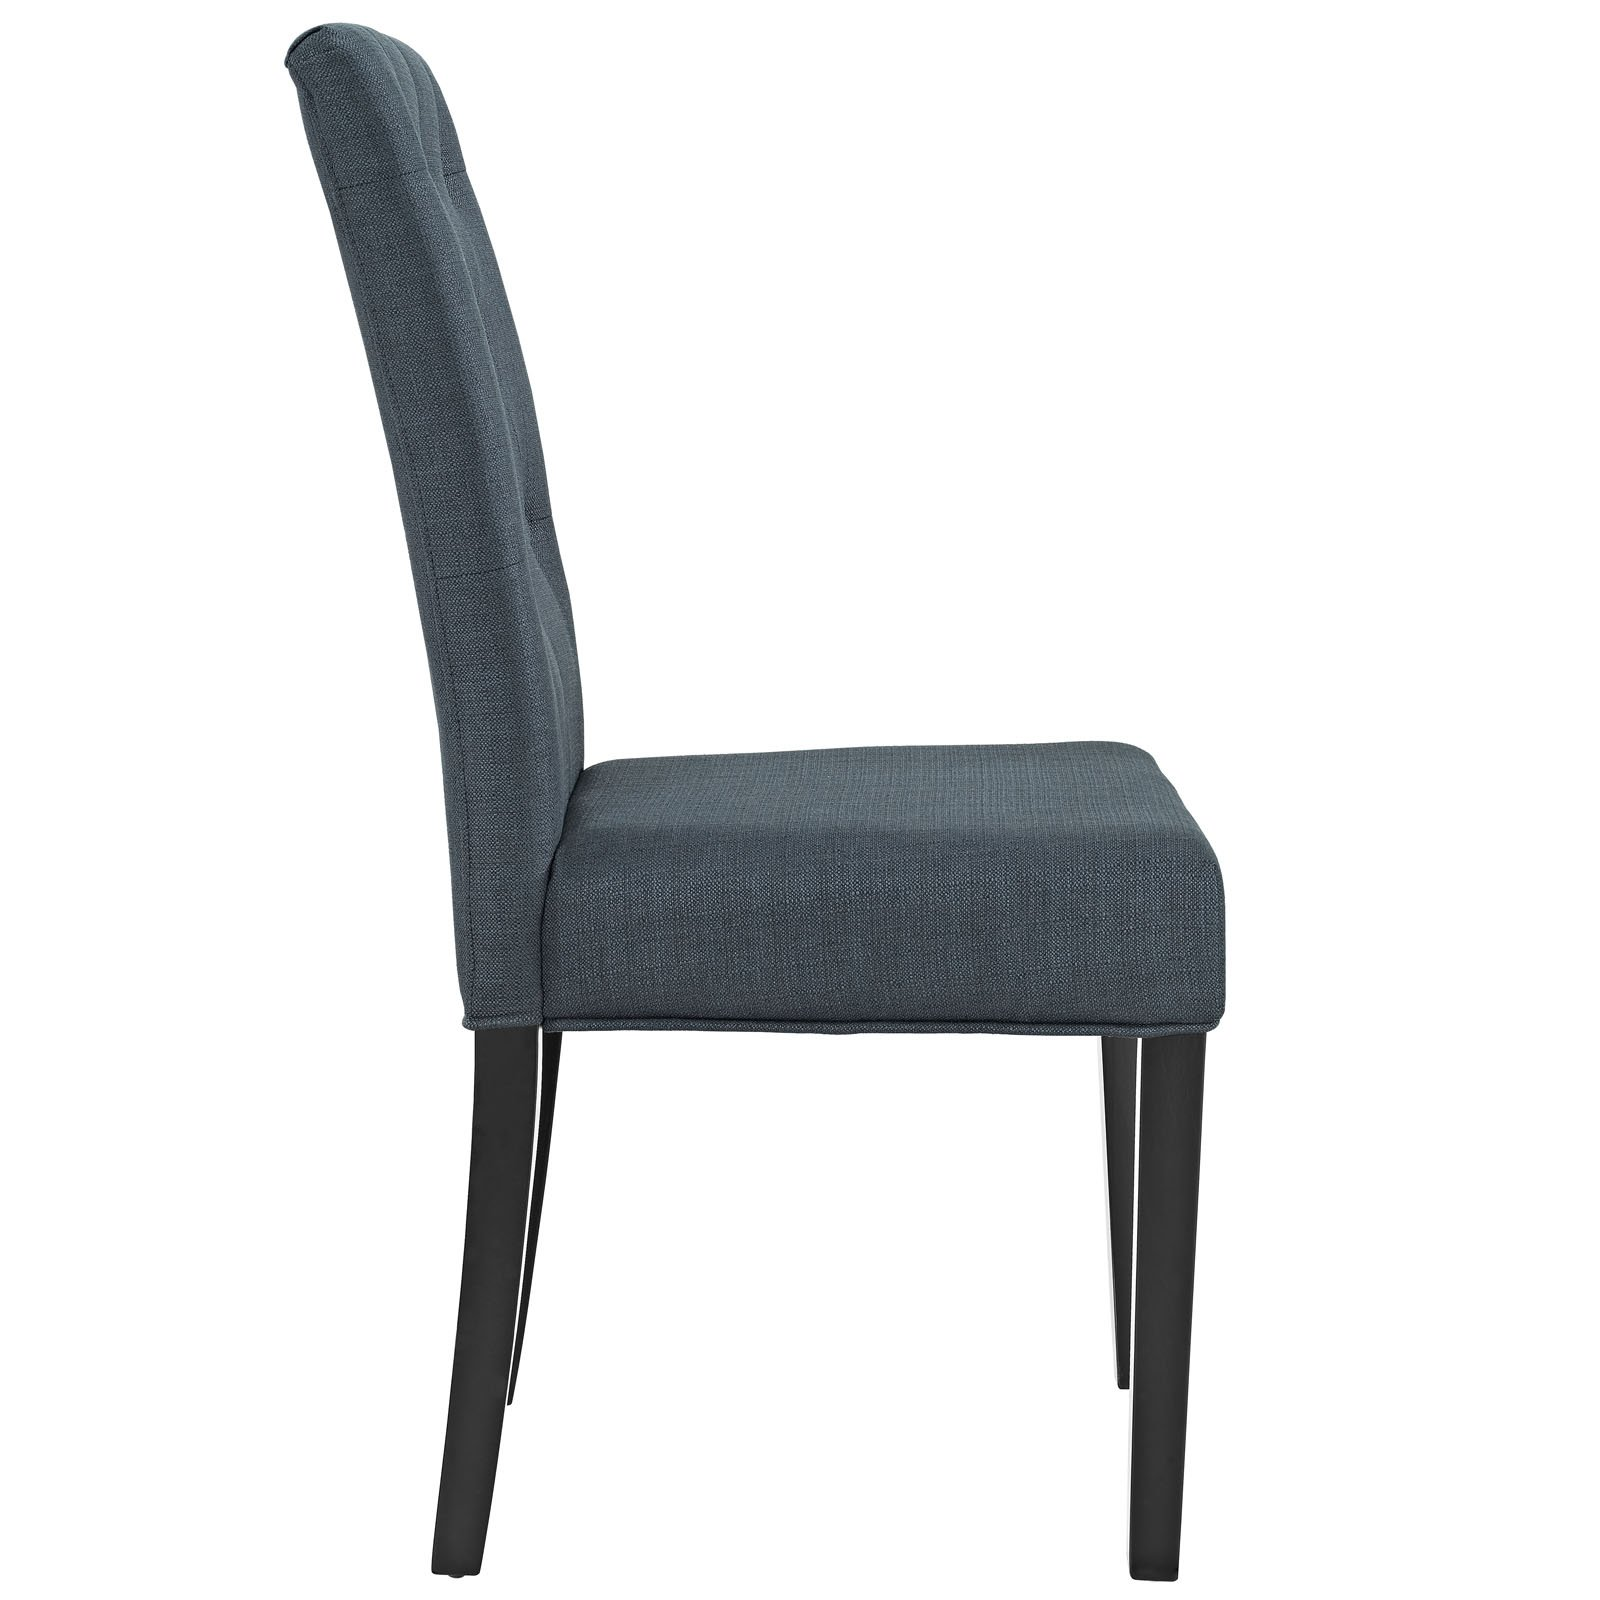 Modway Confer Dining Fabric Side Chair, Gray by Modway (Image #2)